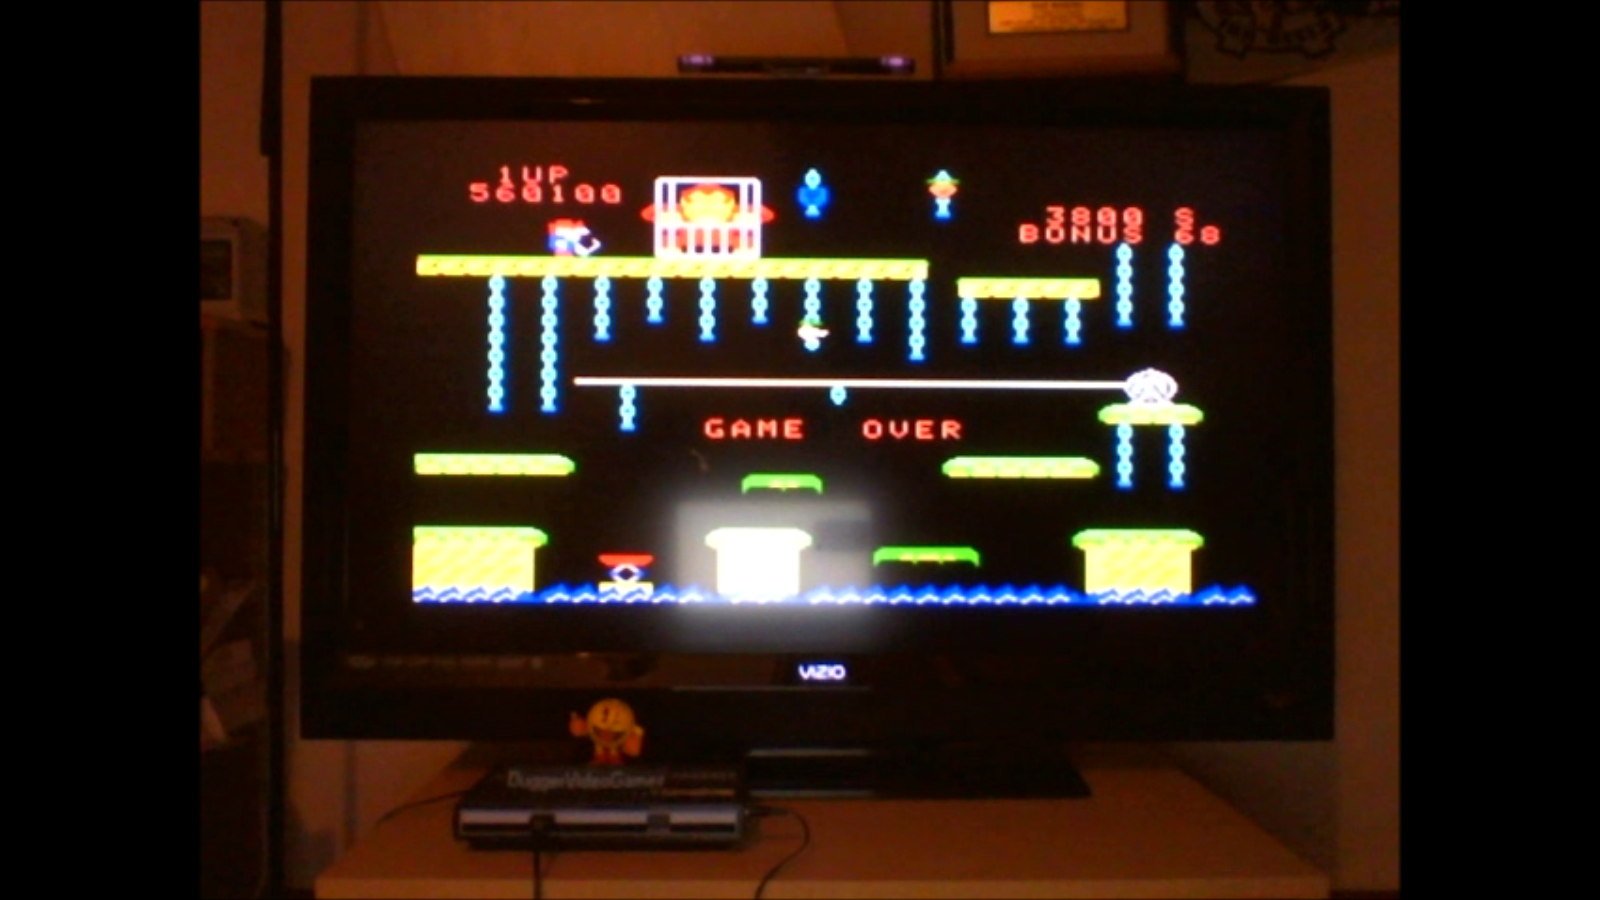 DuggerVideoGames: Donkey Kong Jr (Colecovision Emulated) 560,100 points on 2016-09-29 02:04:29